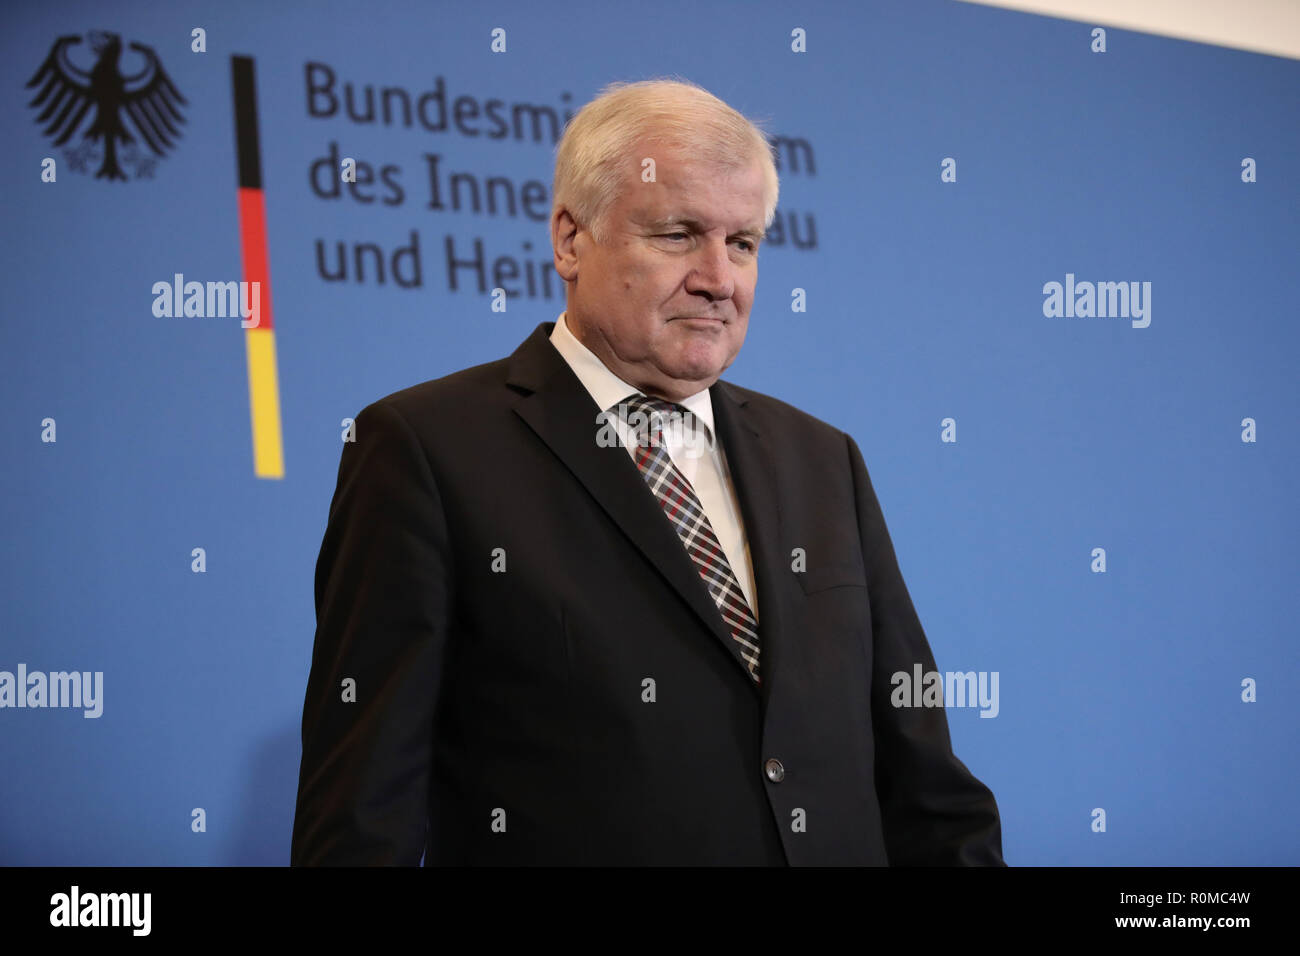 Berlin, Germany. 05th Nov, 2018. Interior Minister Horst Seehofer (CSU) issued a press statement in the Interior Ministry on the management of the Federal Office for the Protection of the Constitution (BMI). Seehofer is putting the controversial president of the German Office for the Protection of the Constitution, Maaßen, into temporary retirement. The background to this is that Maaßen, in a farewell speech, had strongly criticized parts of the coalition and again massively defended his controversial remarks on 'hunt hunting' in Chemnitz. Credit: Michael Kappeler/dpa/Alamy Live News - Stock Image